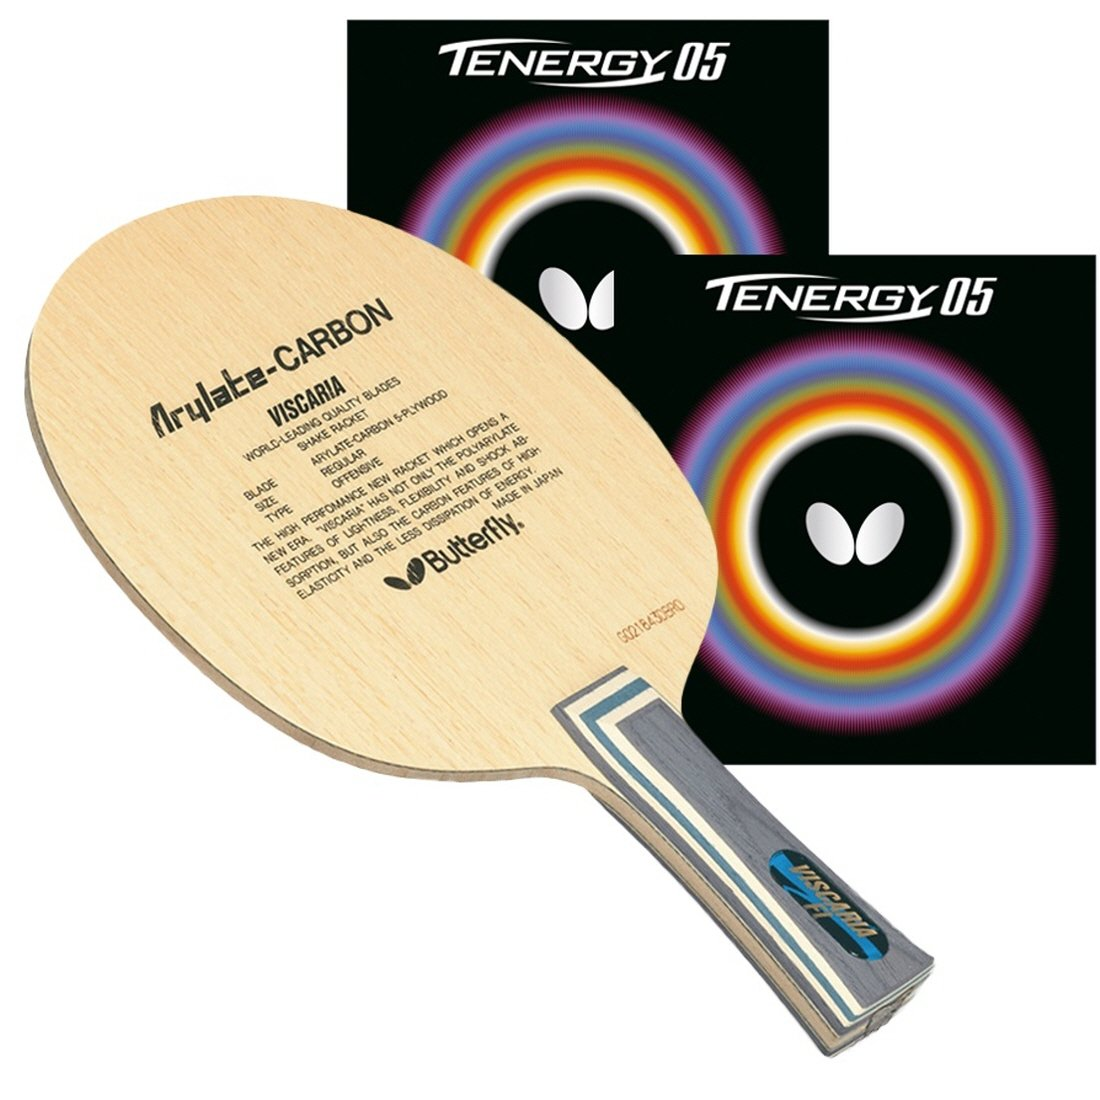 Butterfly Viscaria FL Blade with Tenergy 05 2.1 Red/Black Rubbers Pro-Line Table Tennis Racket